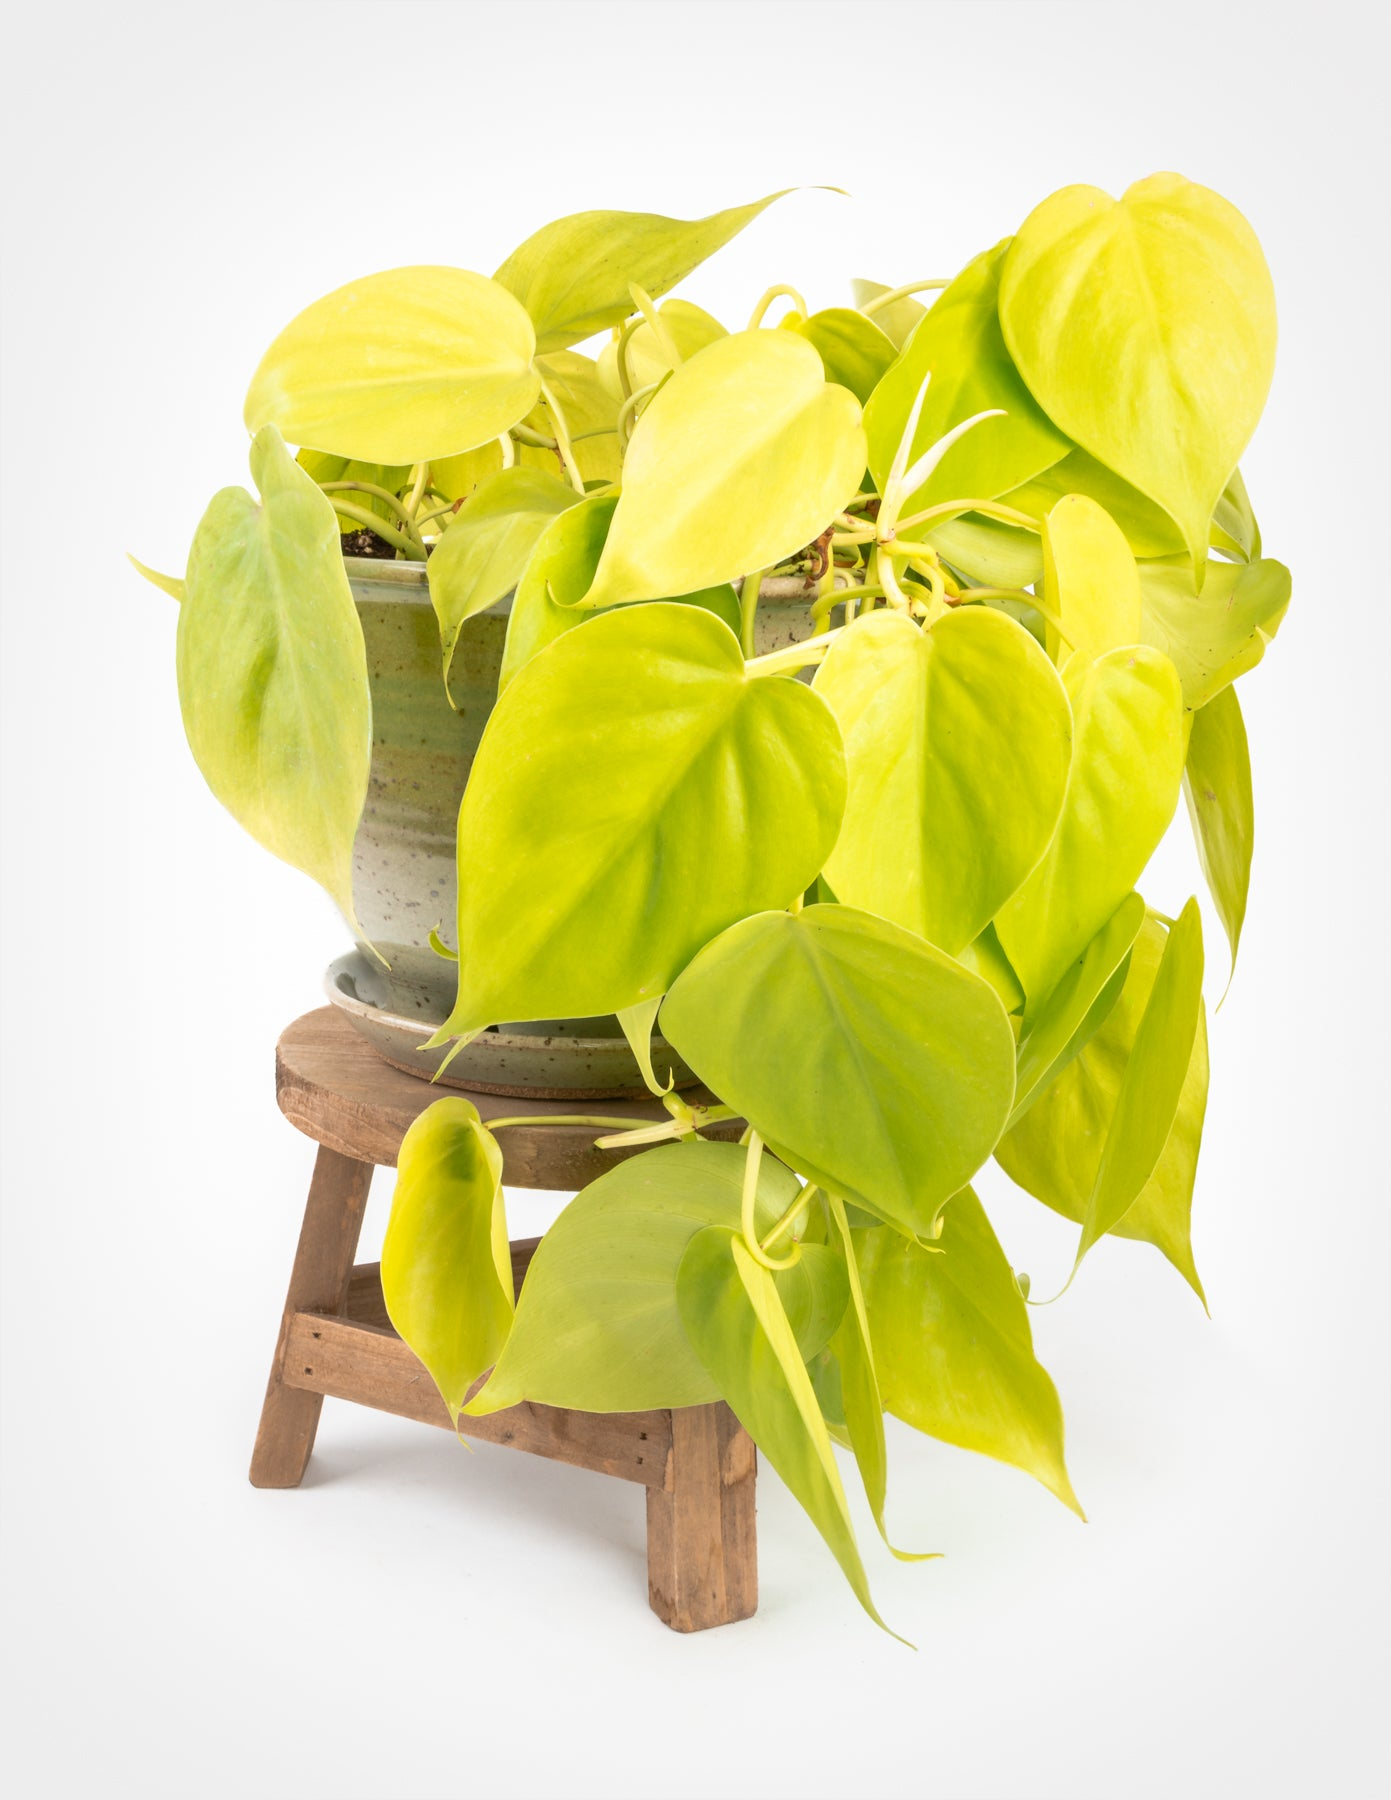 Philodendron hederaceum 'Lemon Lime' on basil house plant, hemp house plant, papaya house plant, fir house plant, baobab house plant, dark purple house plant, black pepper house plant, leaf house plant, ivory house plant, monkey puzzle tree house plant, sago house plant, water lily house plant, cinnamon house plant, olive house plant, egg plant house plant, multi color house plant, vanilla house plant, orange house plant, potato house plant,